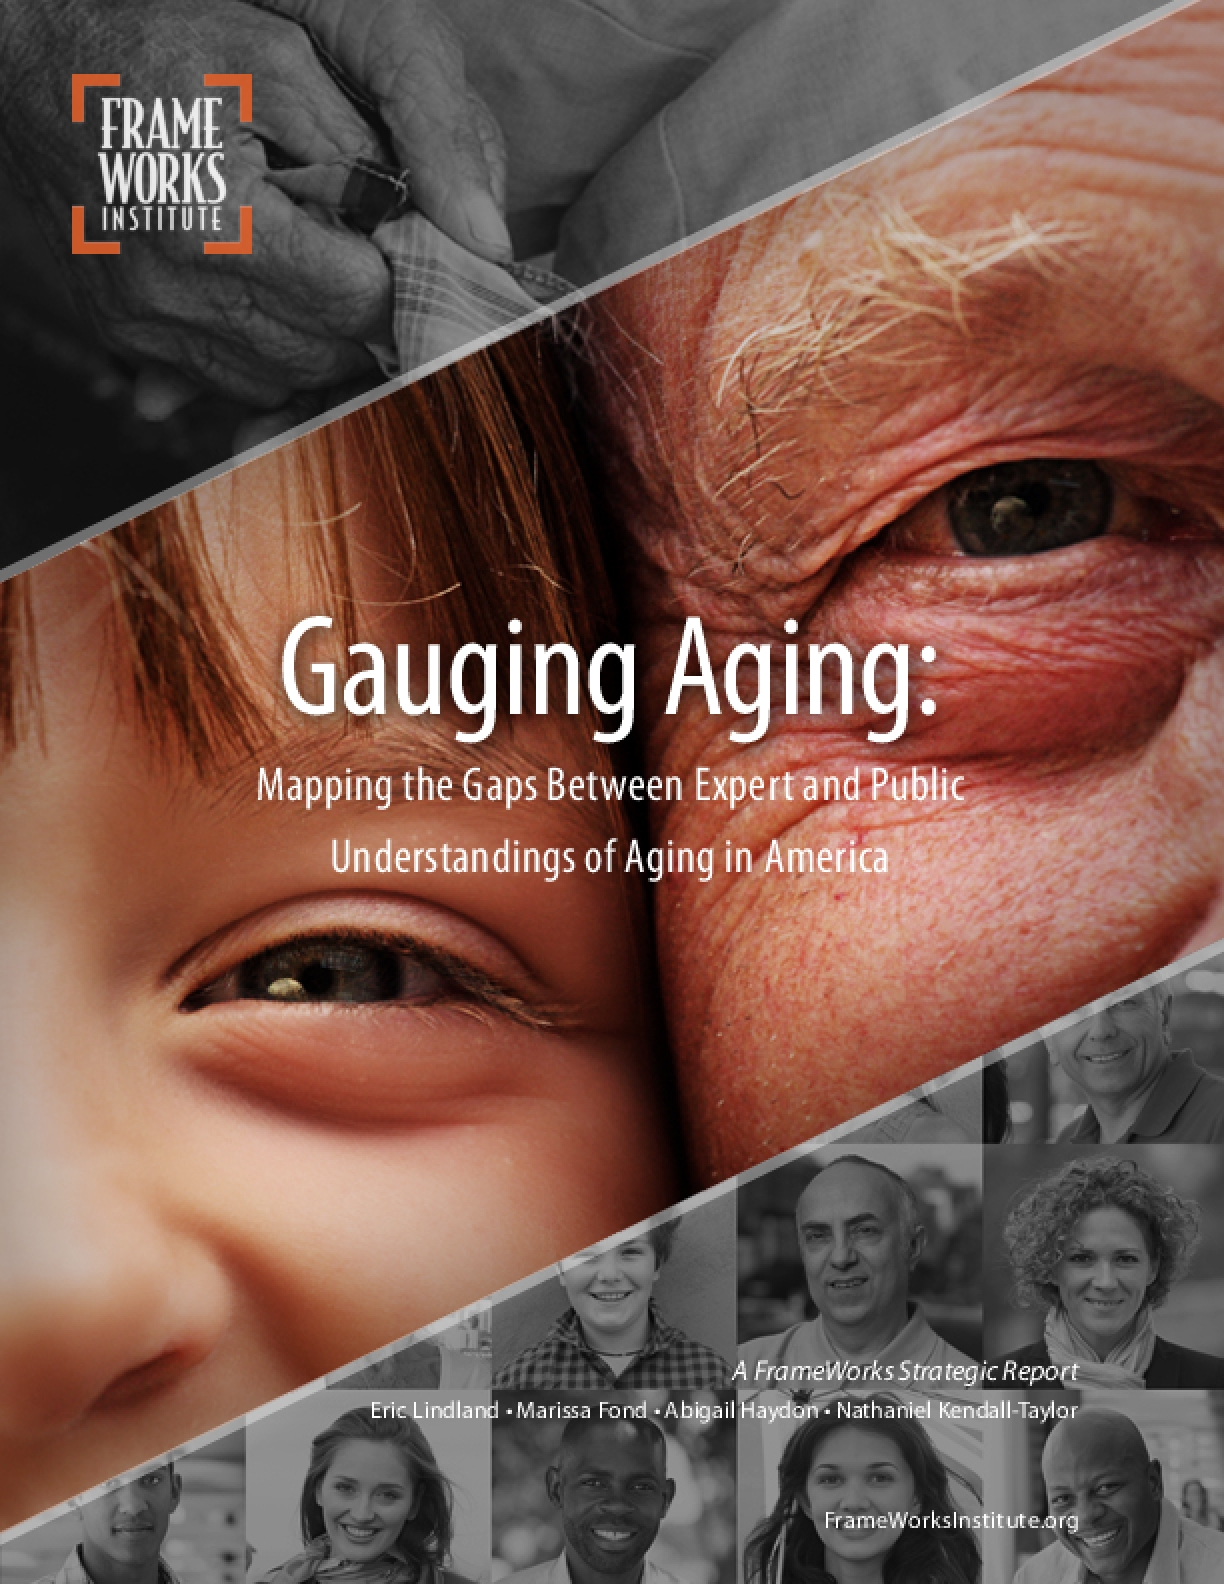 Guaging Aging: Mapping the Gaps Between Expert and Public Understandings of Aging in America